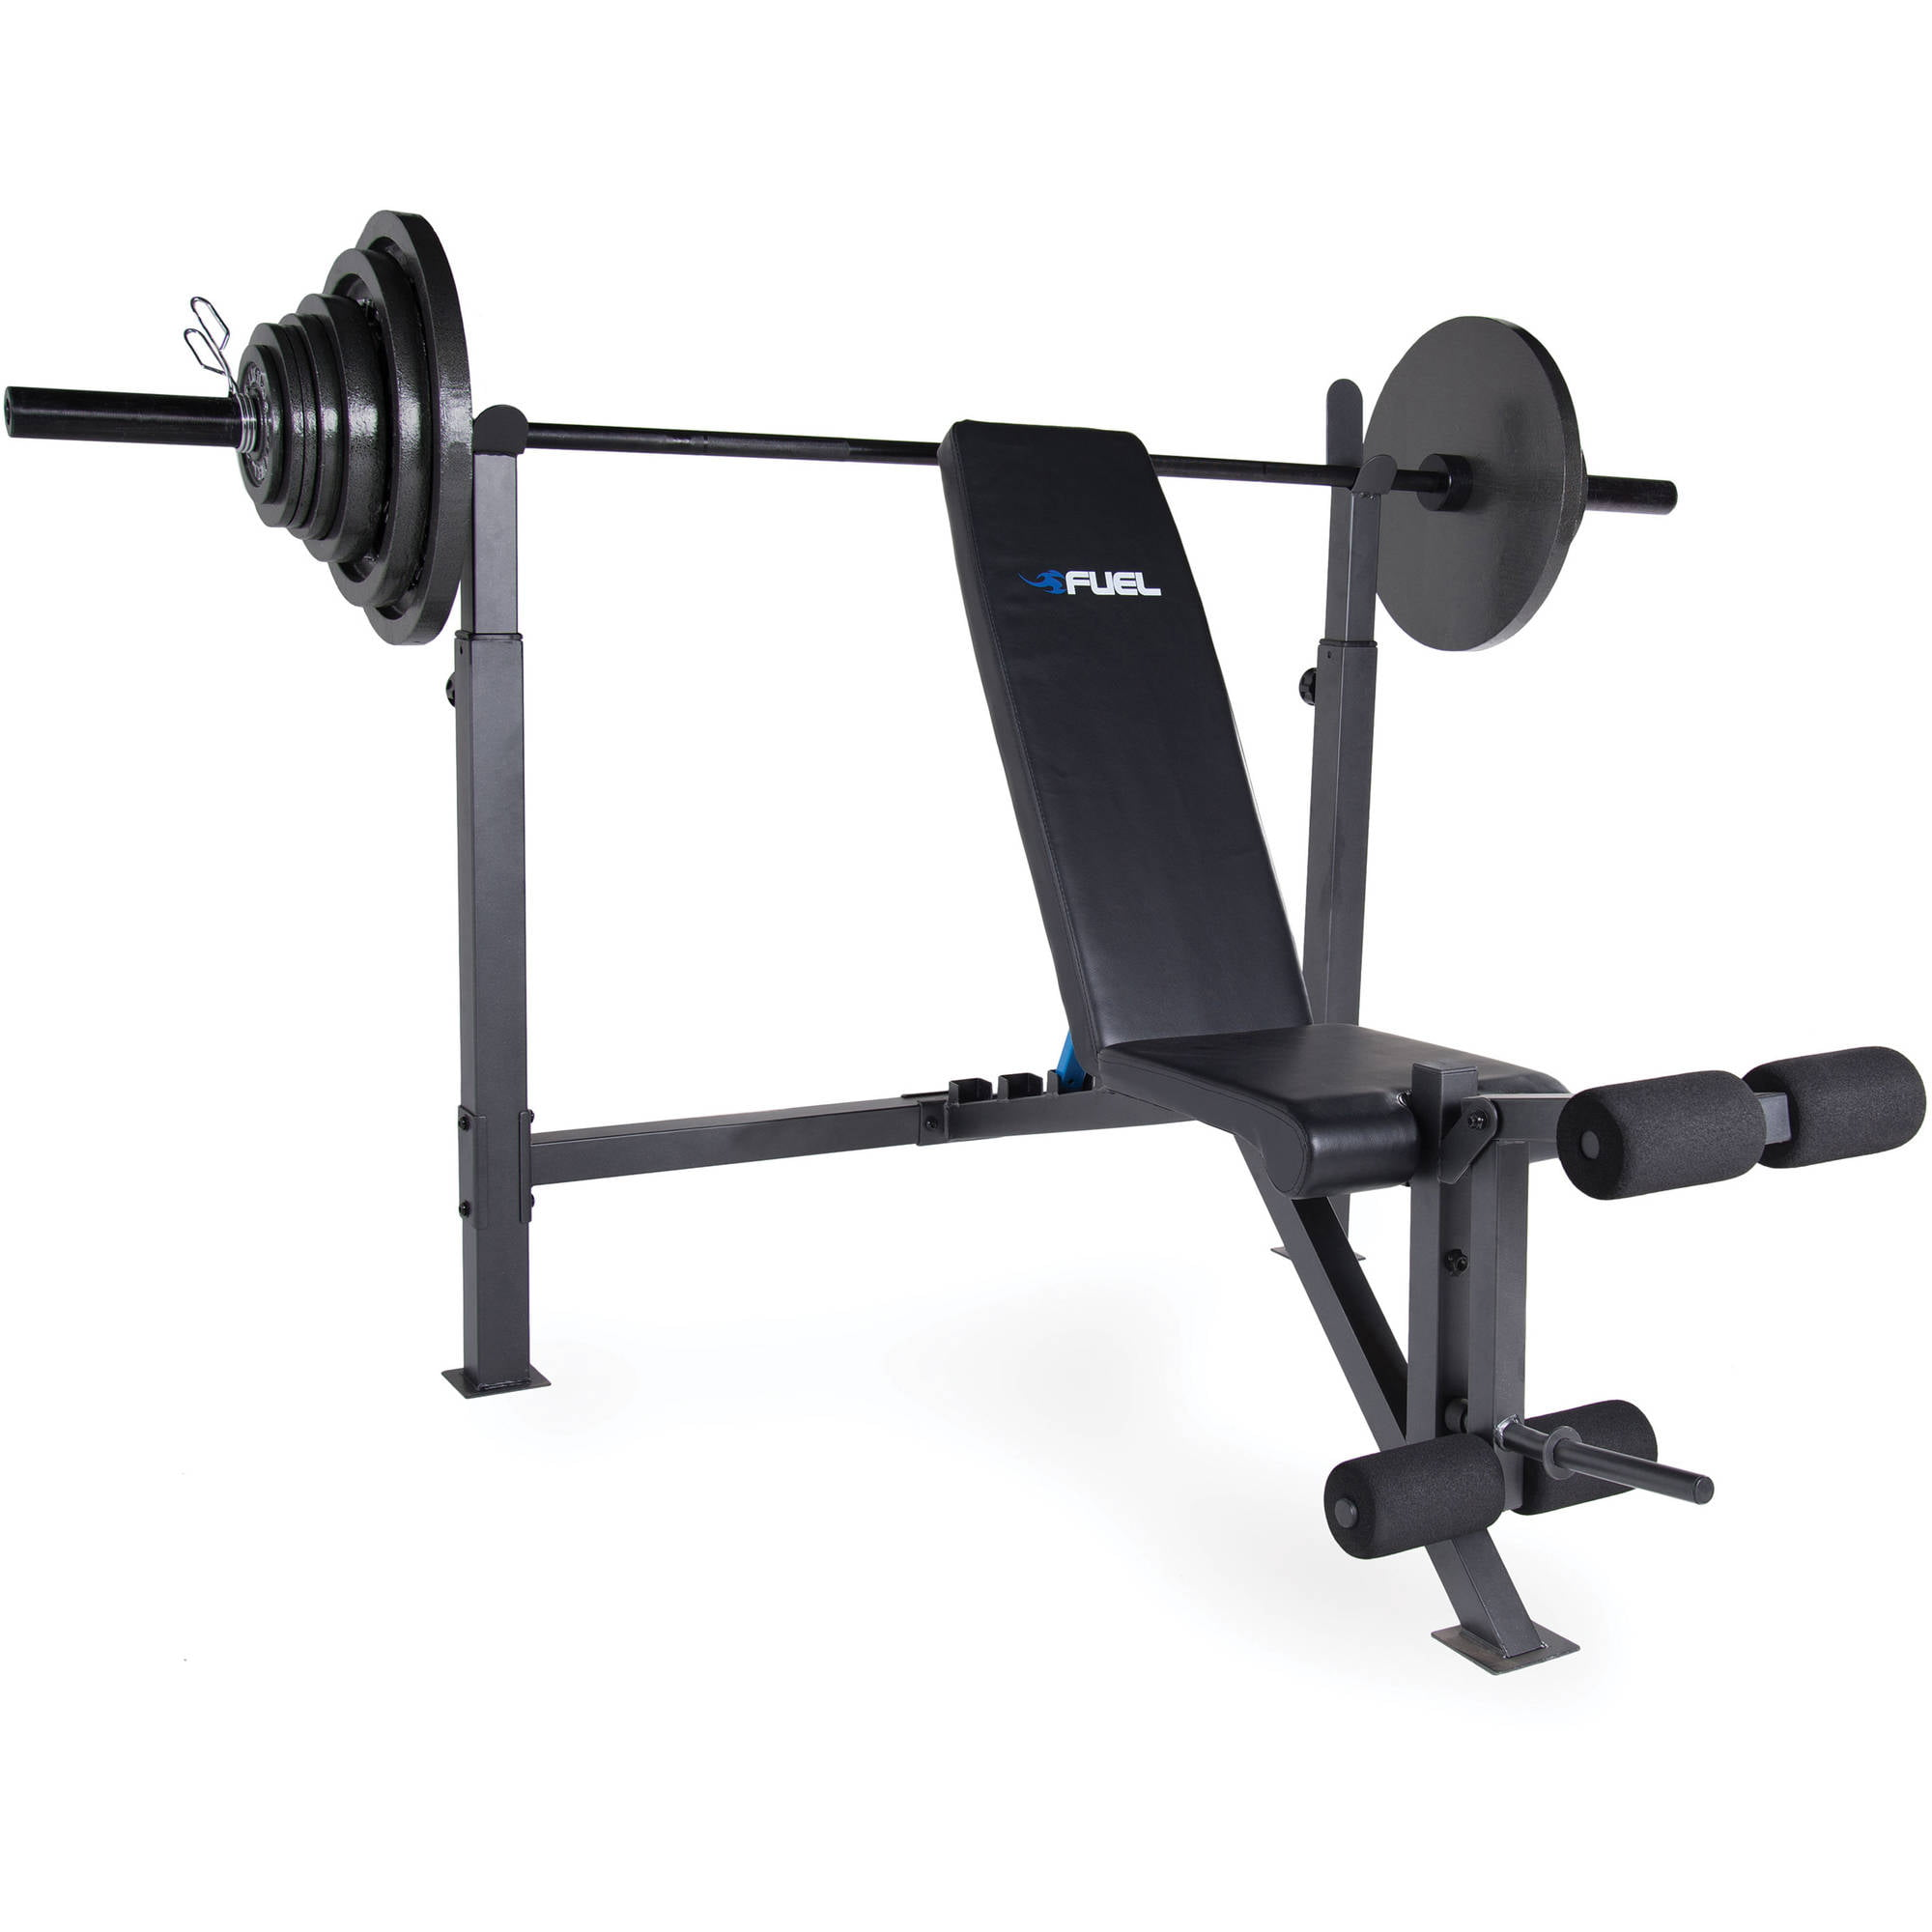 weight olympic performance bench weights adidas canada fm dp benches and amazon standard